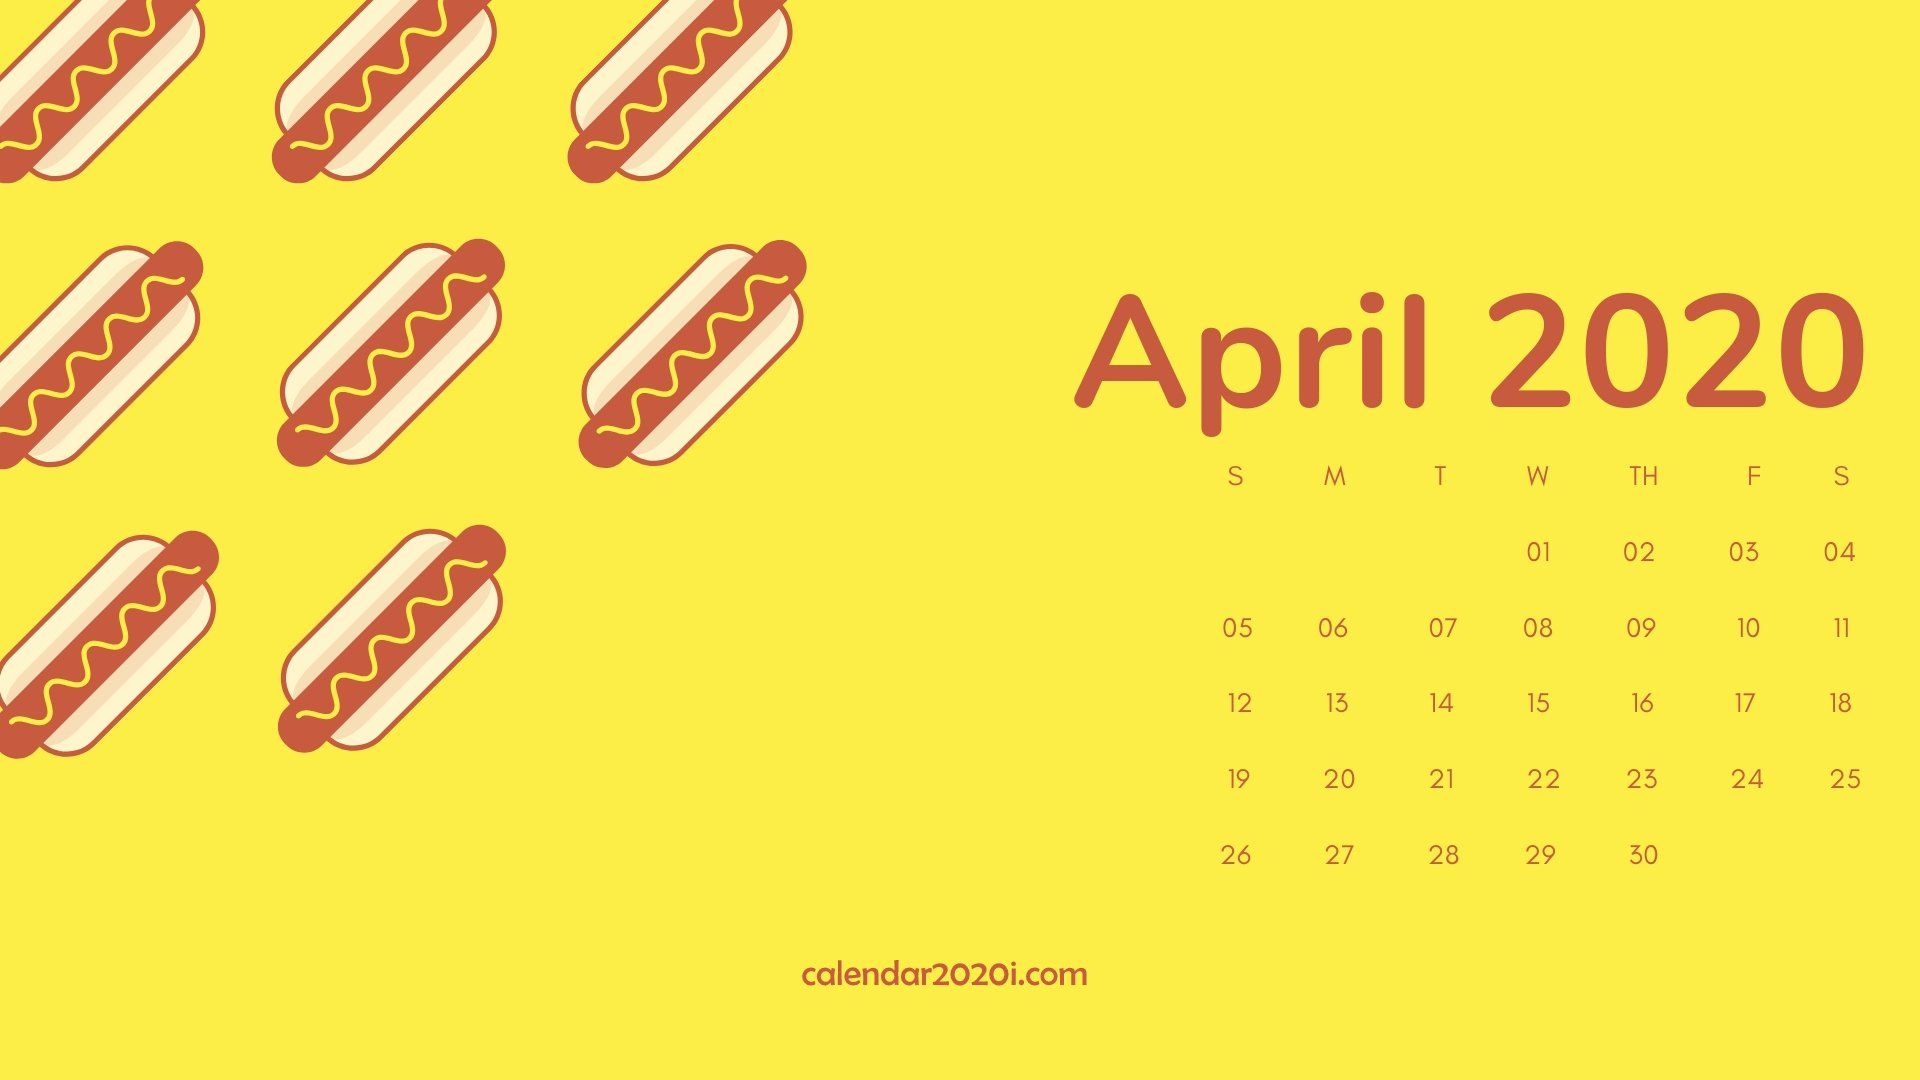 April 2020 Calendar Desktop Wallpaper in 2019 Calendar 1920x1080